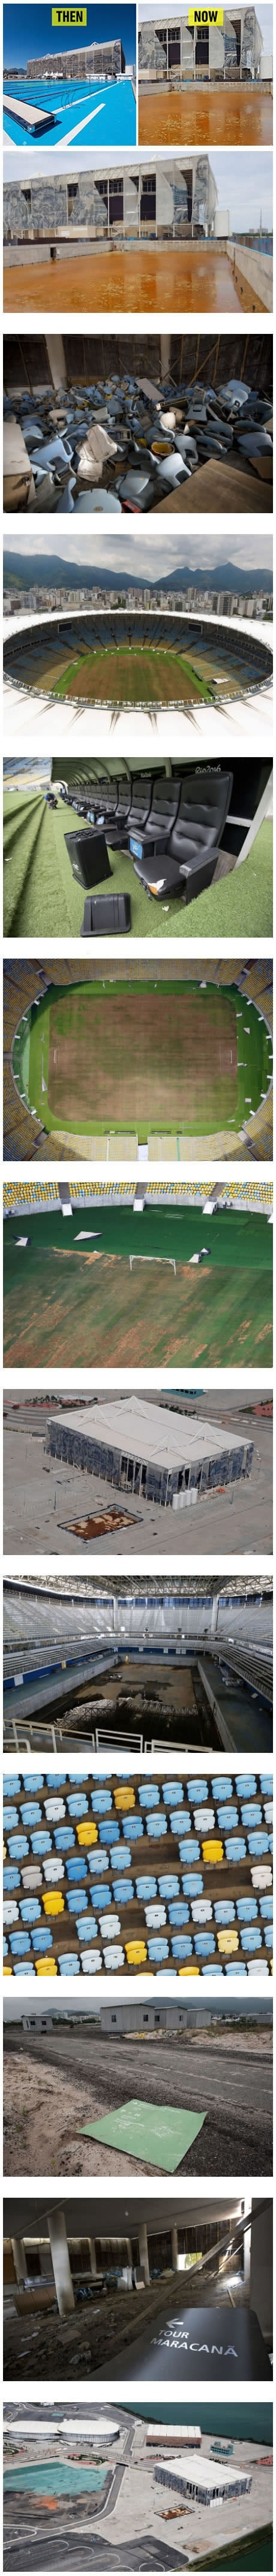 Rio 2016 olympic venues 6 Mmonths after